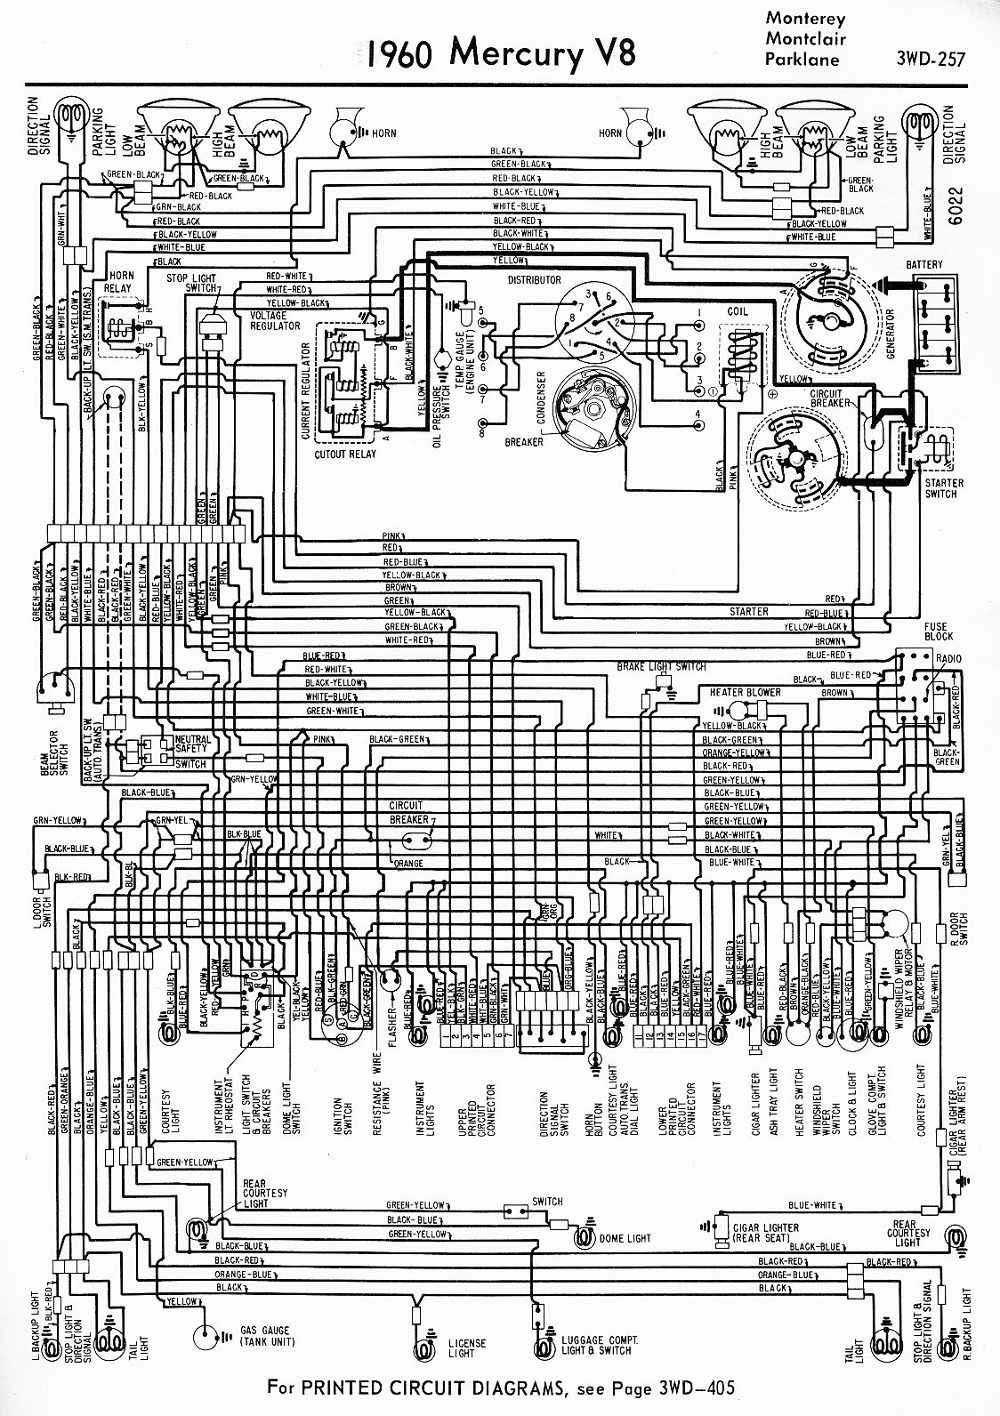 wiring diagram for 2004 mercury monterey wiring diagram. Black Bedroom Furniture Sets. Home Design Ideas